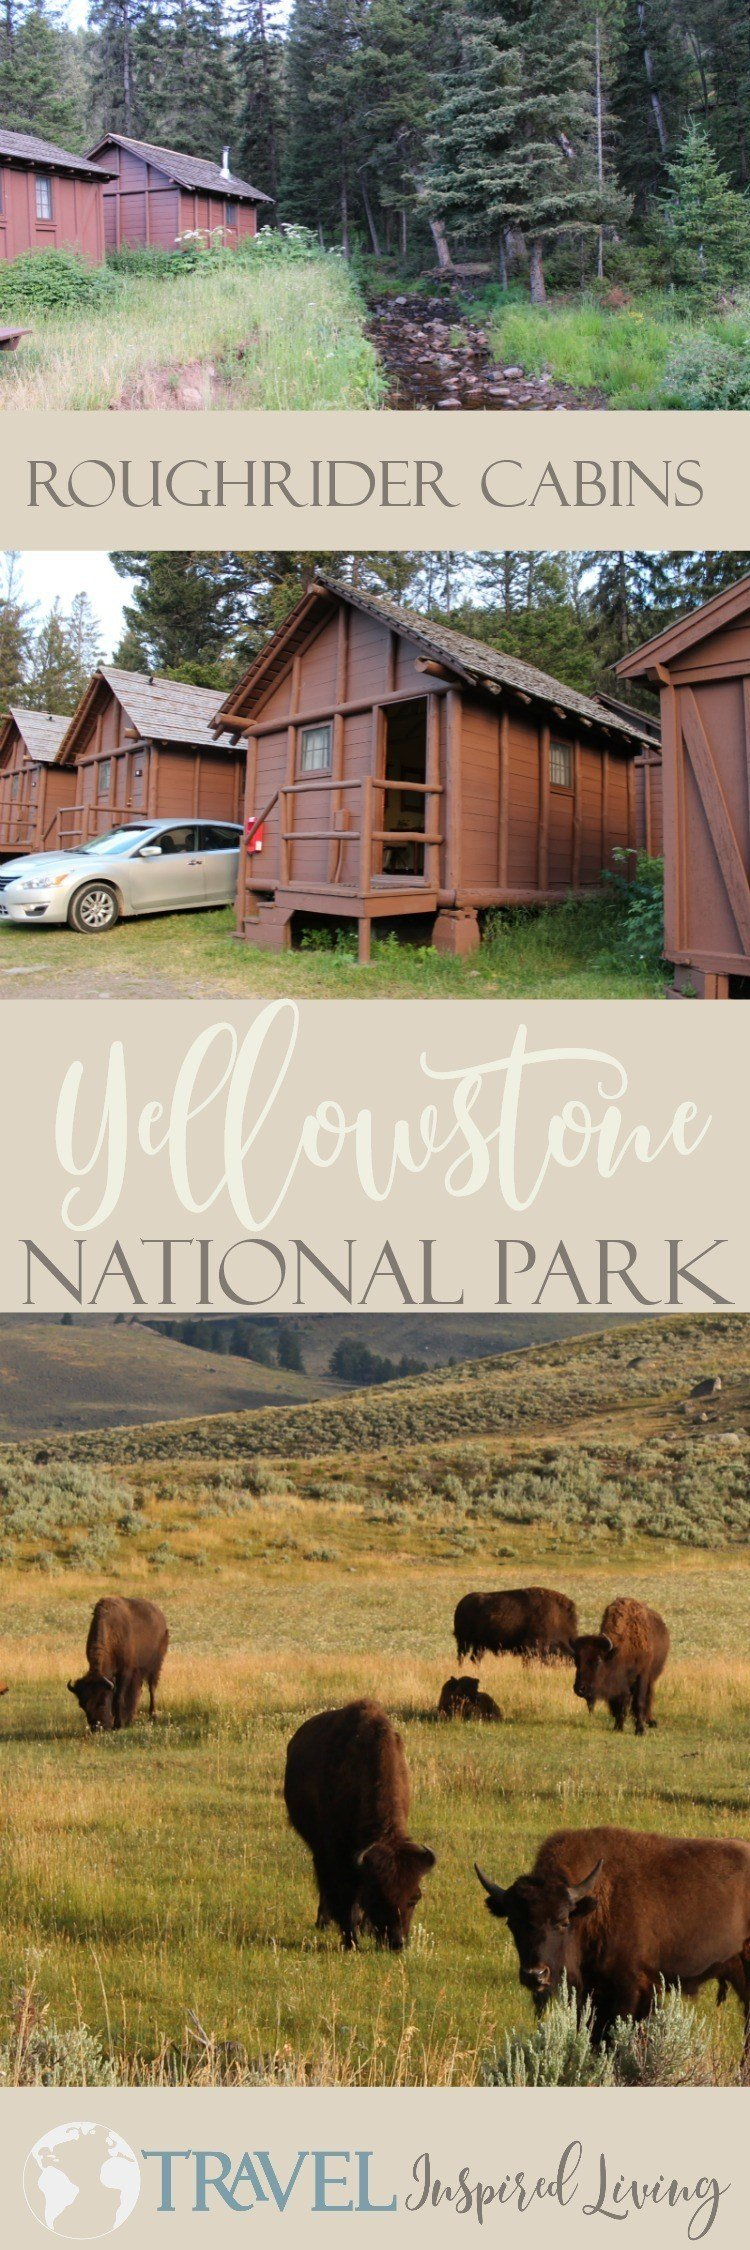 The Roughrider Cabins at Yellowstone National Park are a welcome alternative to tent camping and affordable lodging within the park.